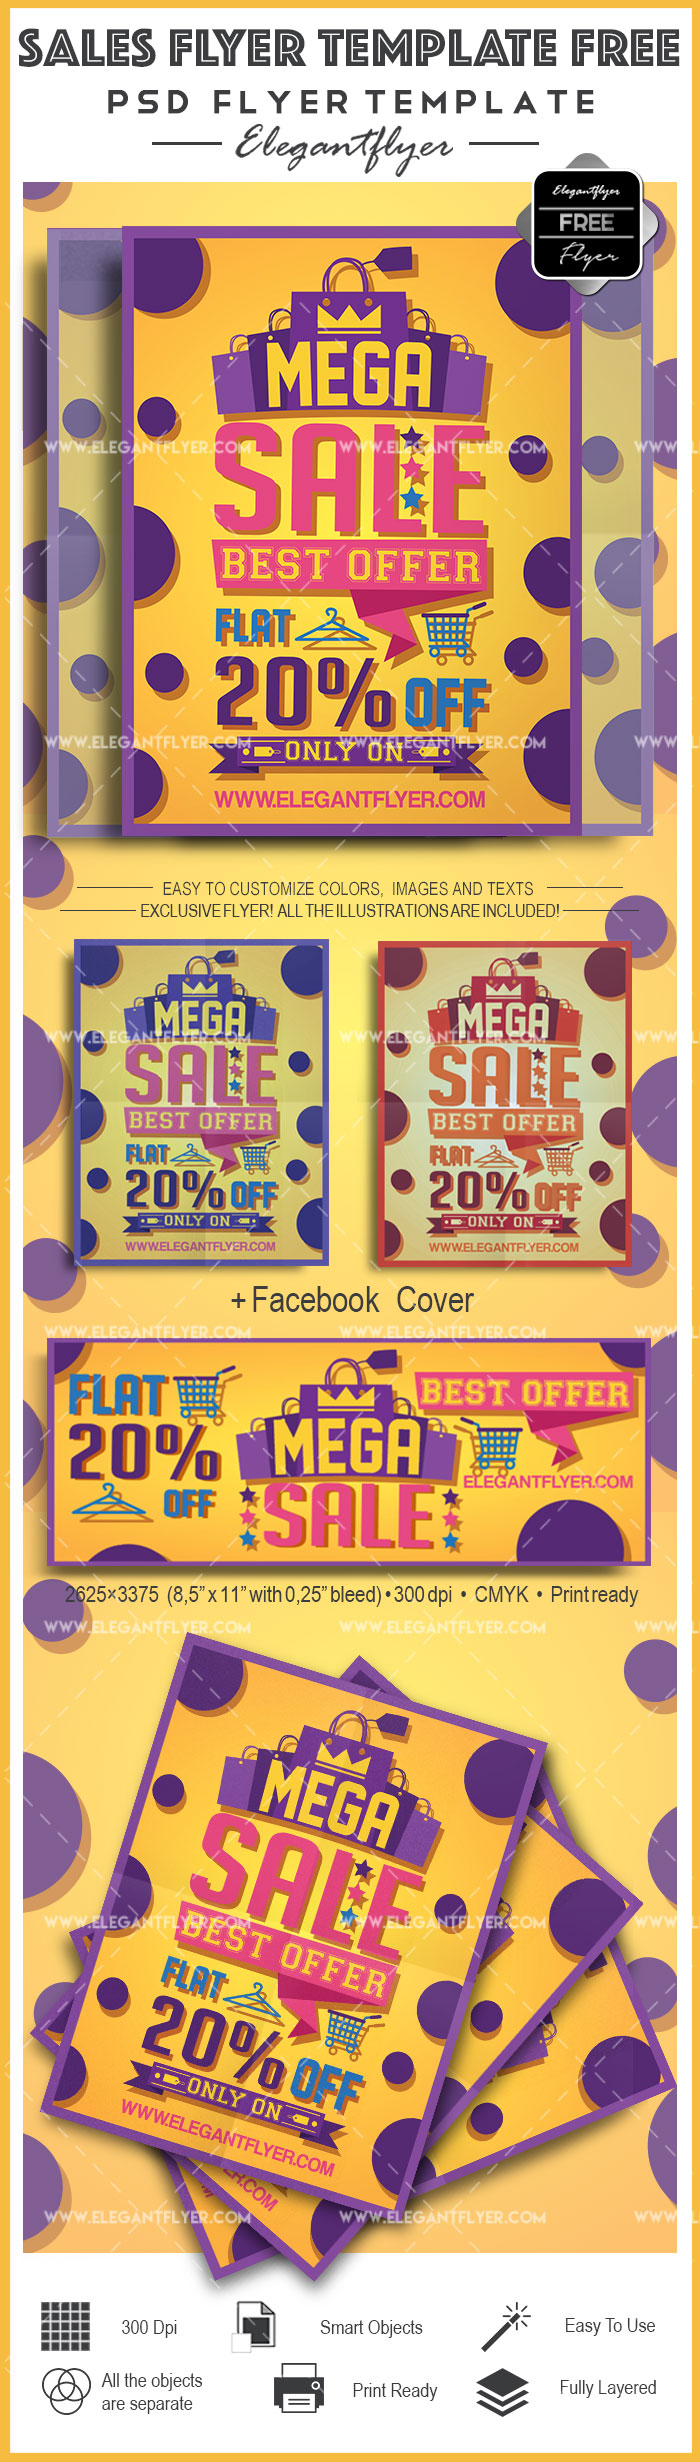 Sales Flyer Template Free – Free Flyer PSD Template